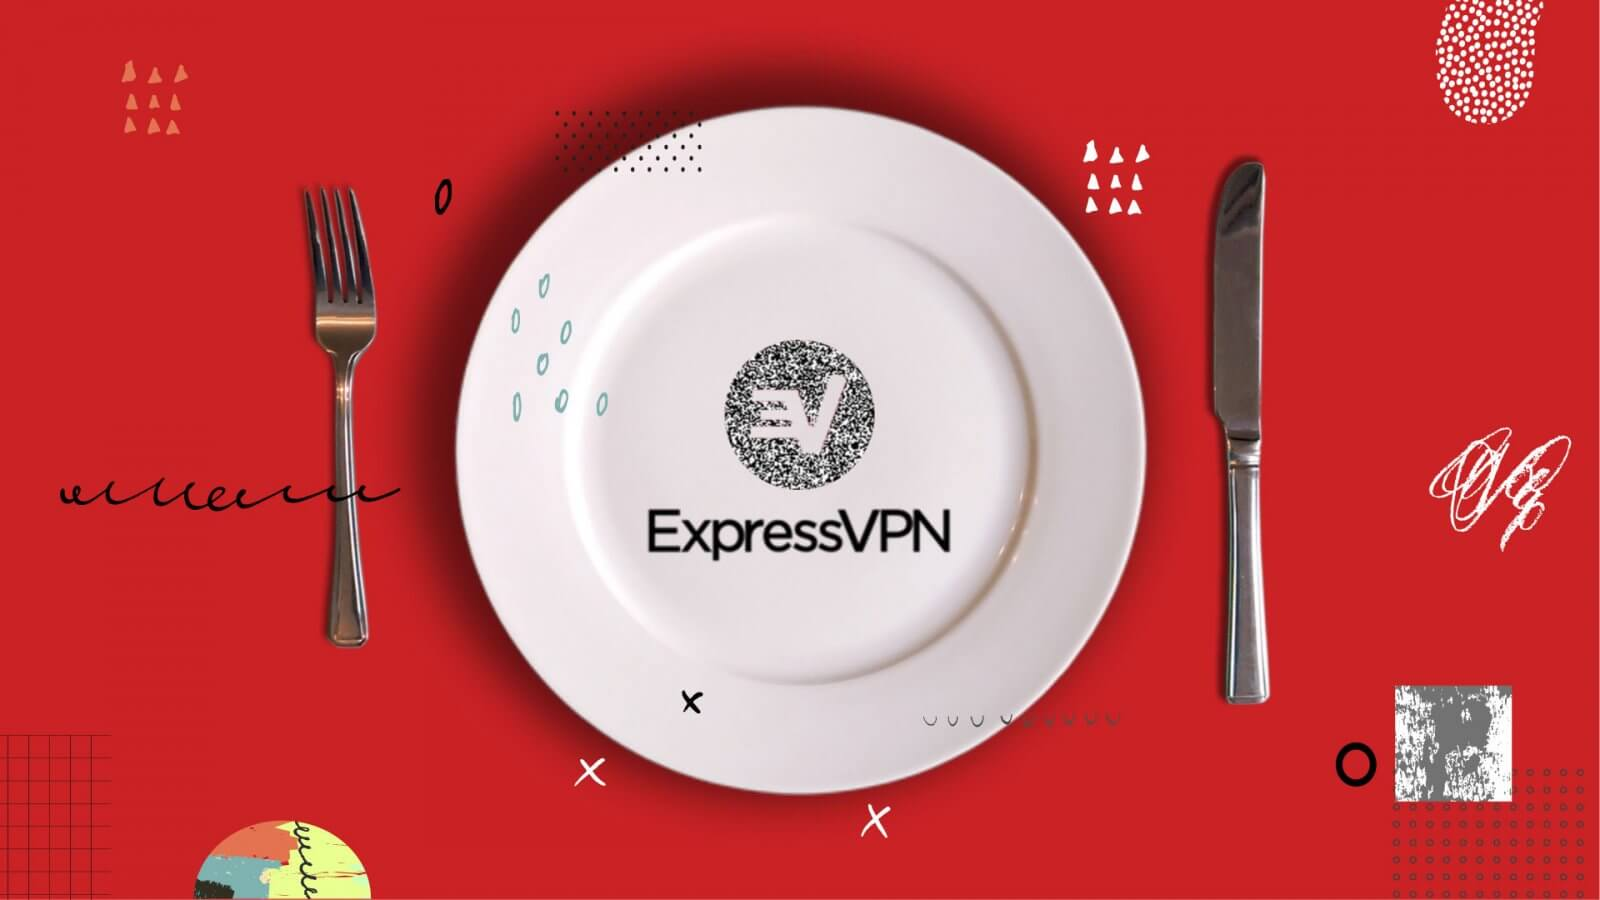 How to Claim Your ExpressVPN Free Trial - September 2019